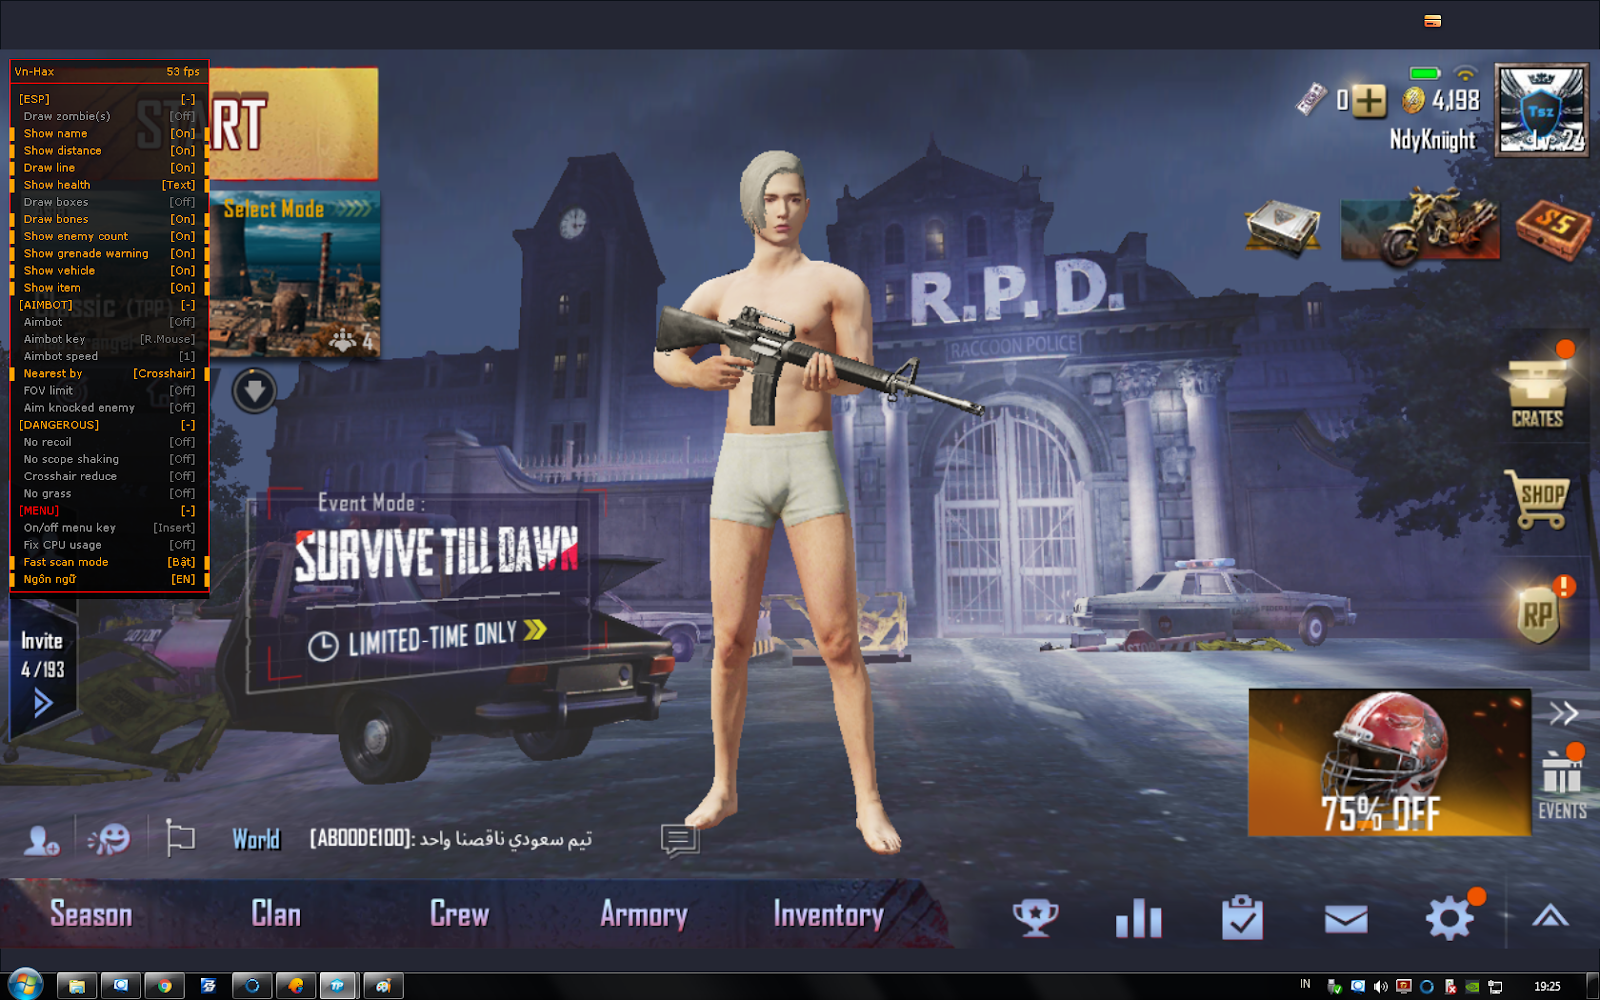 Release Cheat Pubgm Pc Emulator 9 Maret 2019 Vip Hack 2143 For Free